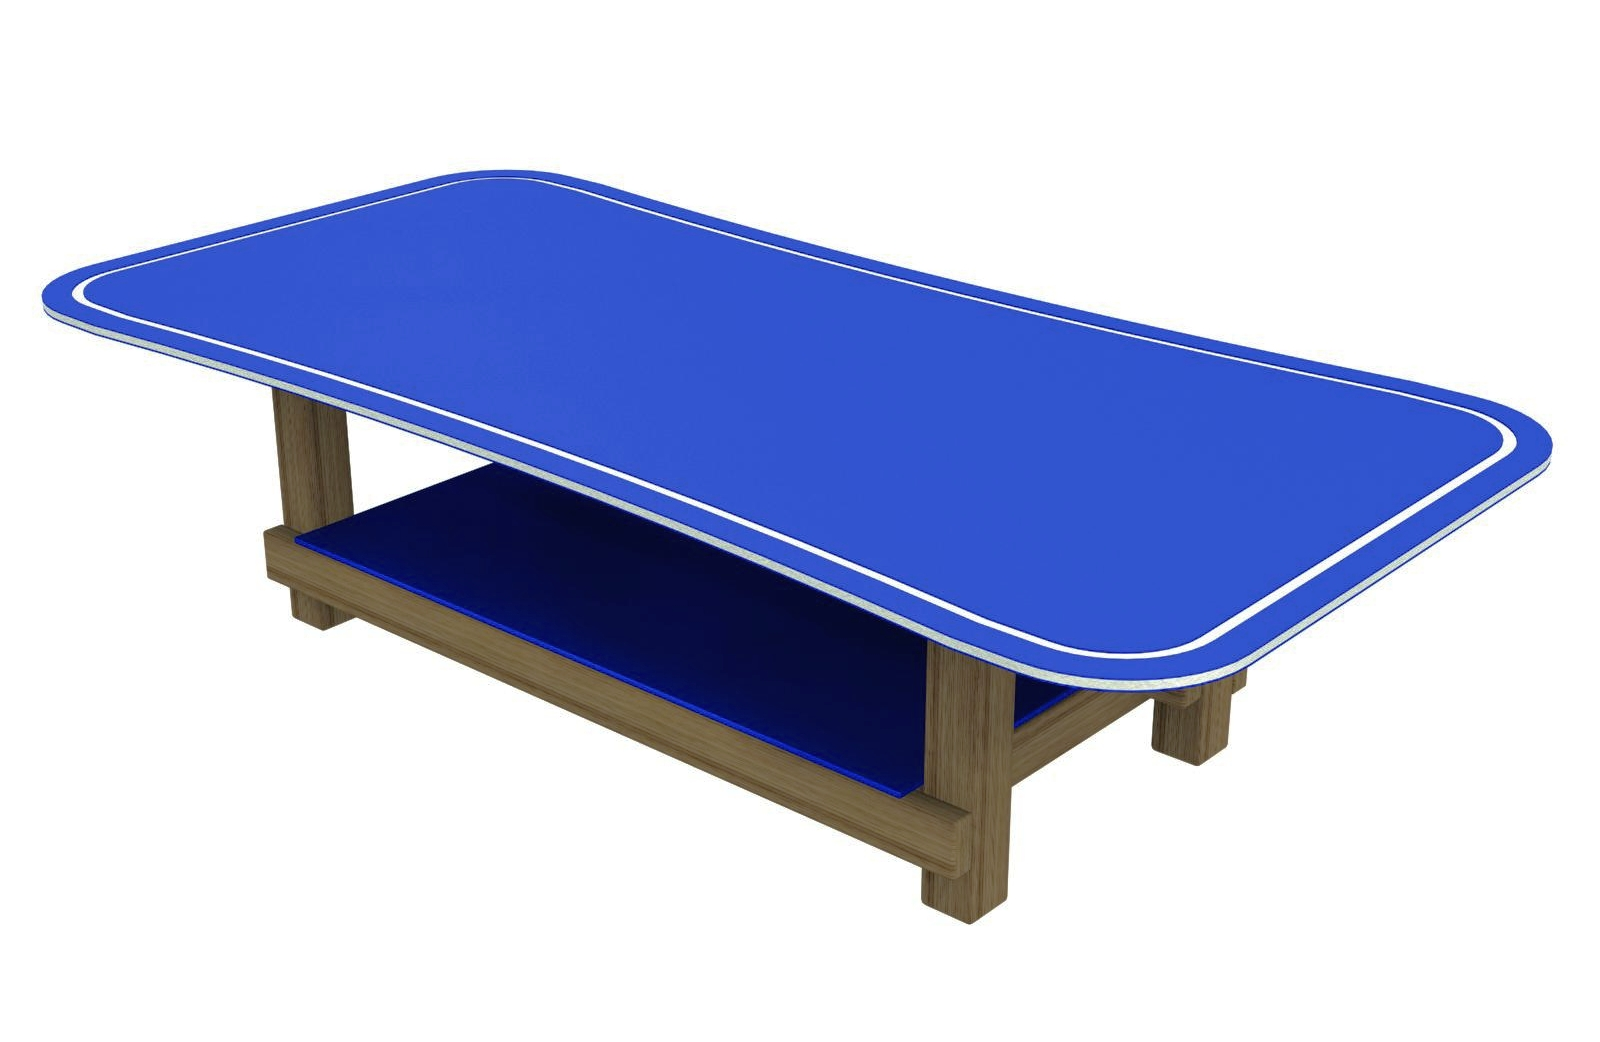 Lego Table with grooved edges